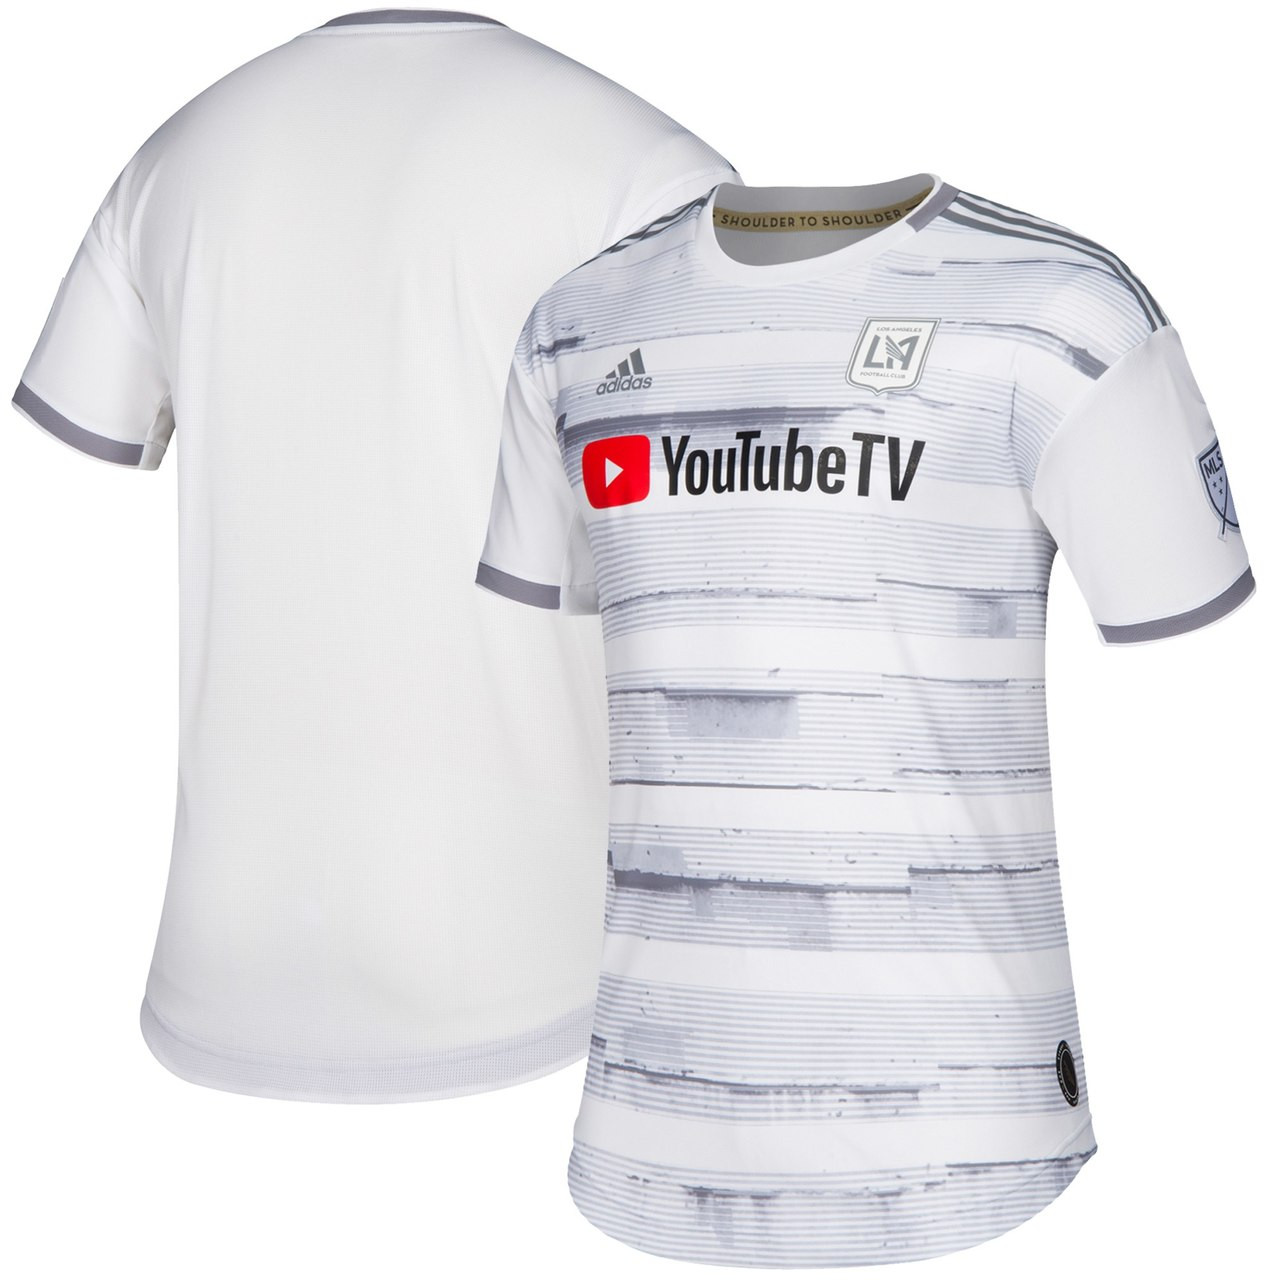 0a8dd8a62 ADIDAS LAFC 2019 Street By Street Authentic Away Jersey White - Soccer Plus